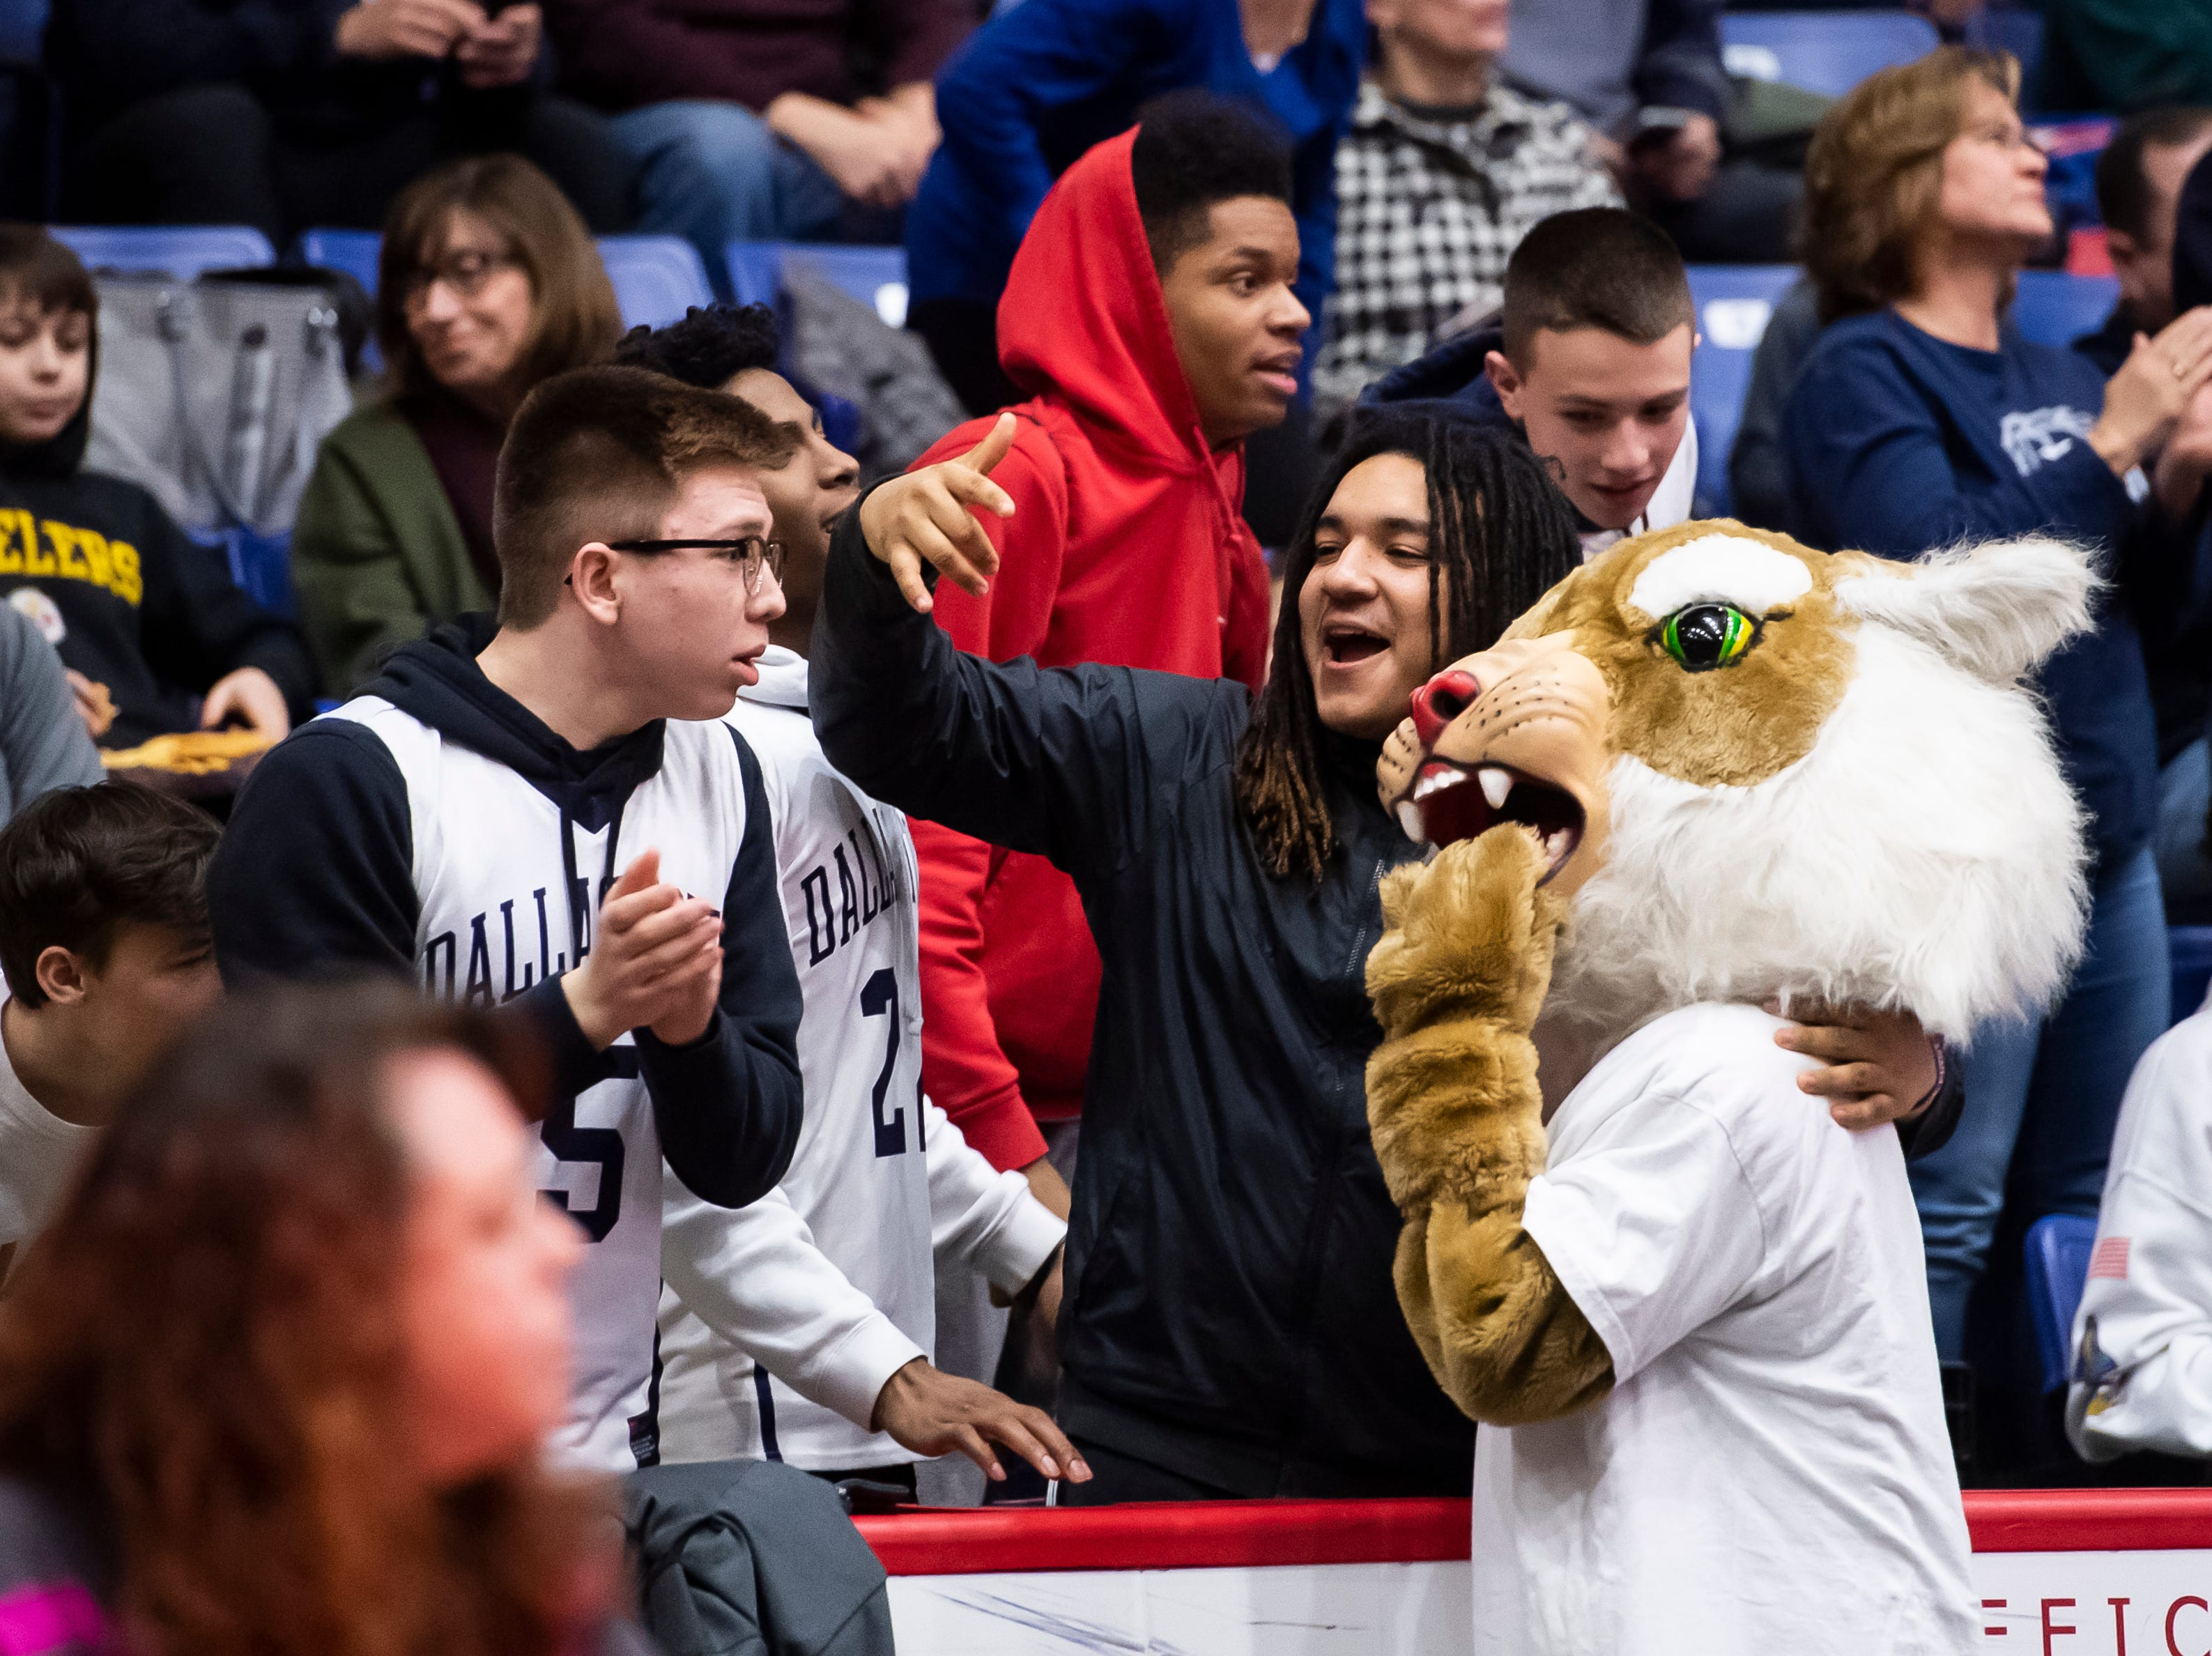 Dallastown fans pose with the Wildcat mascot during the District 3 6A girls championship game against Cumberland Valley at the Santander Arena in Reading, Pa., Friday, March 1, 2019. Dallastown fell 33-27.